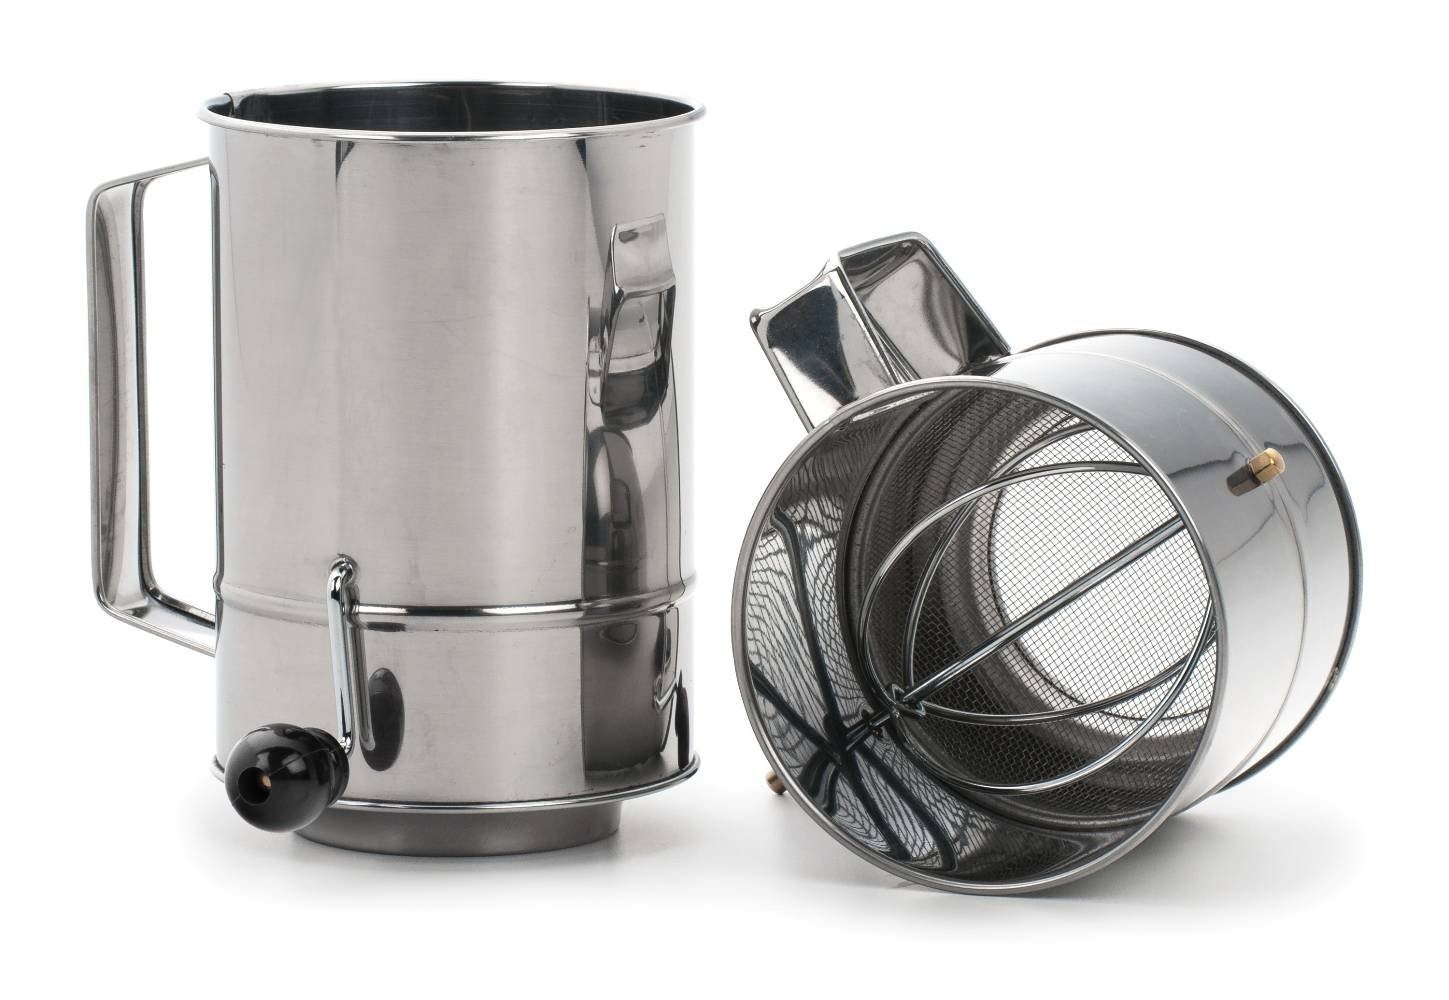 OKSLO Endurance stainless steel 5-cup crank style flour sifter - dishwasher safe